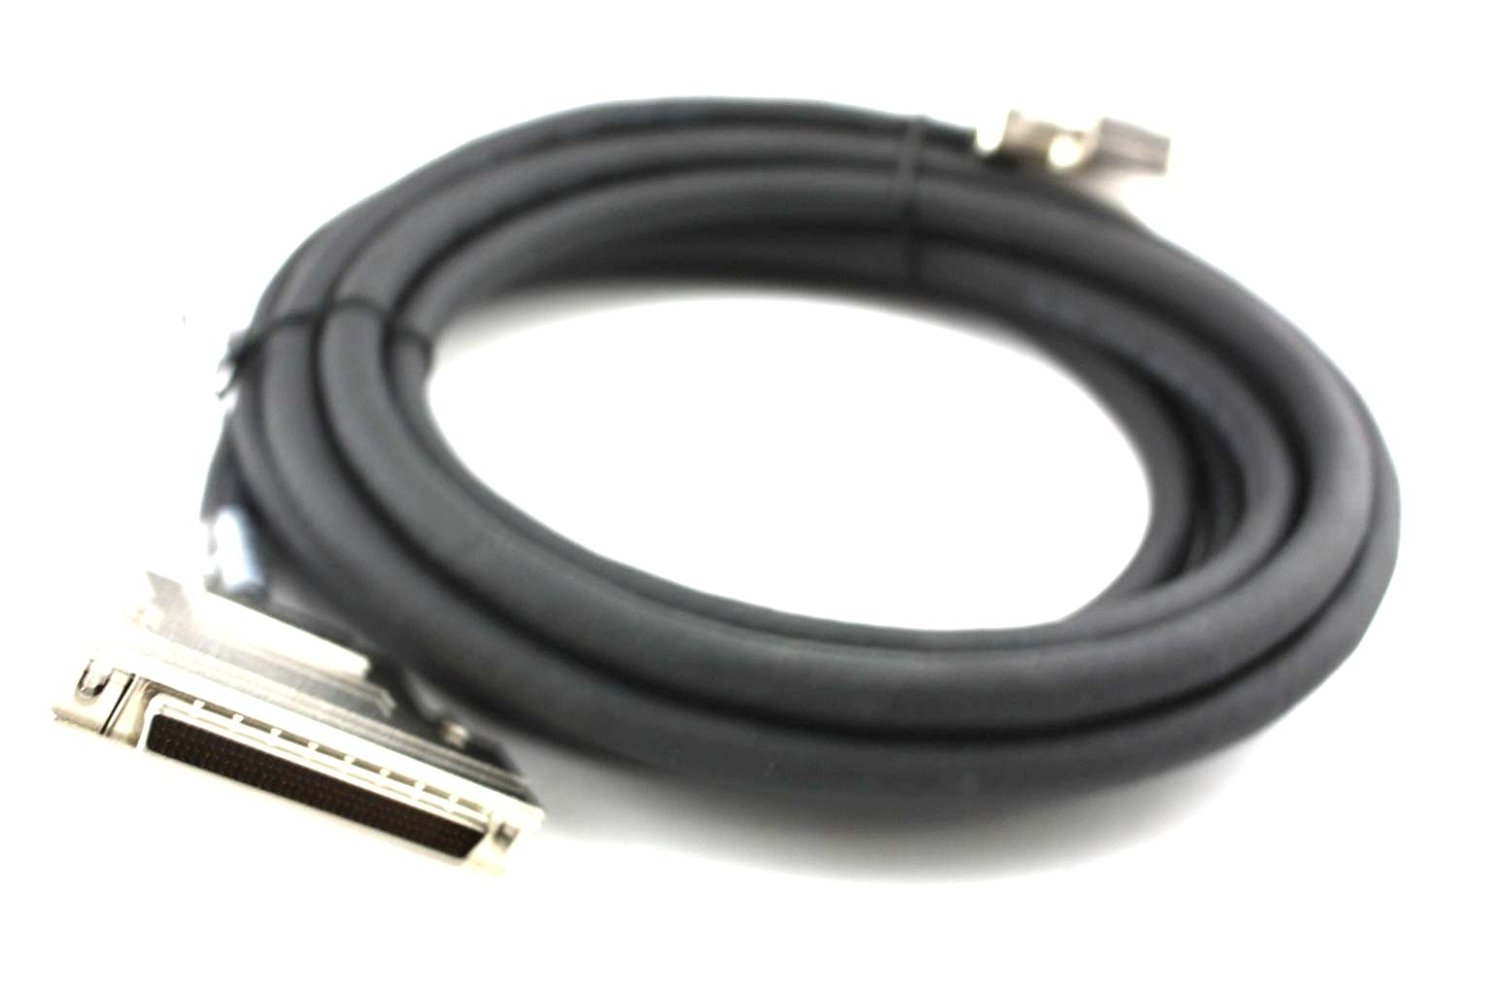 NEW Sealed 3 02897 07 12ft 68pin Scsi Male TO Male Cable